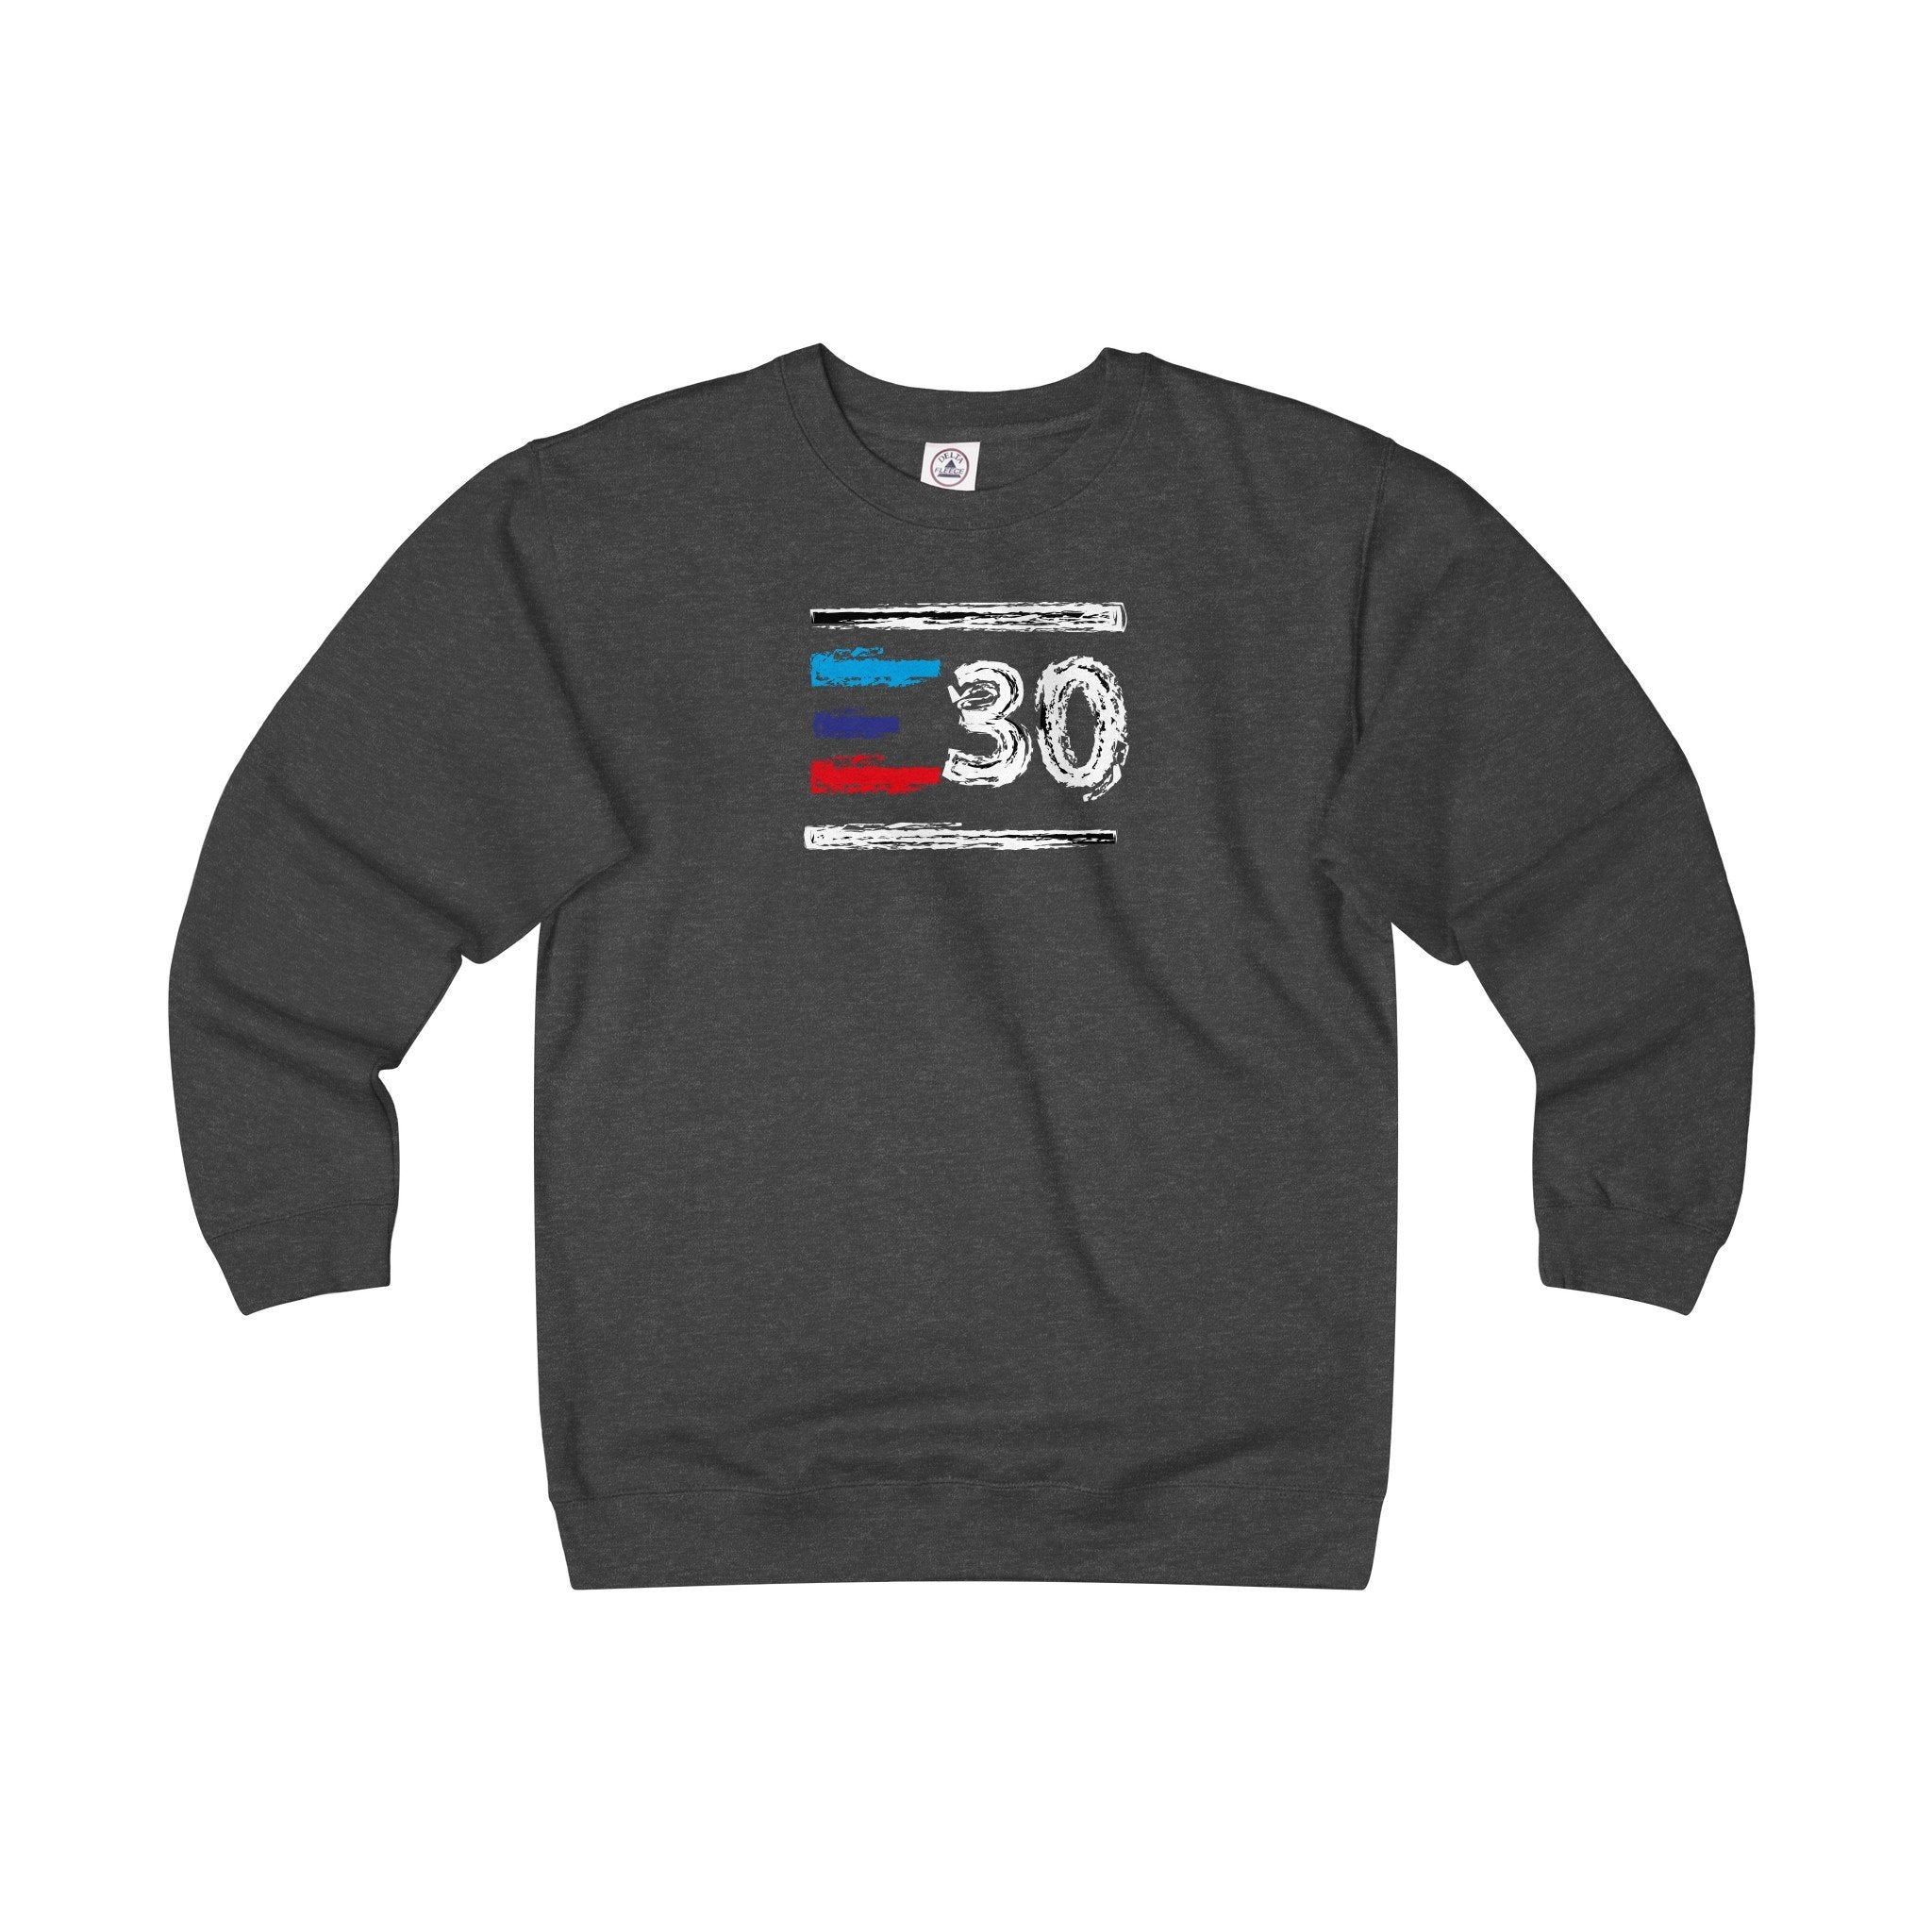 E30 Scratch Sweatshirt - ShopE30